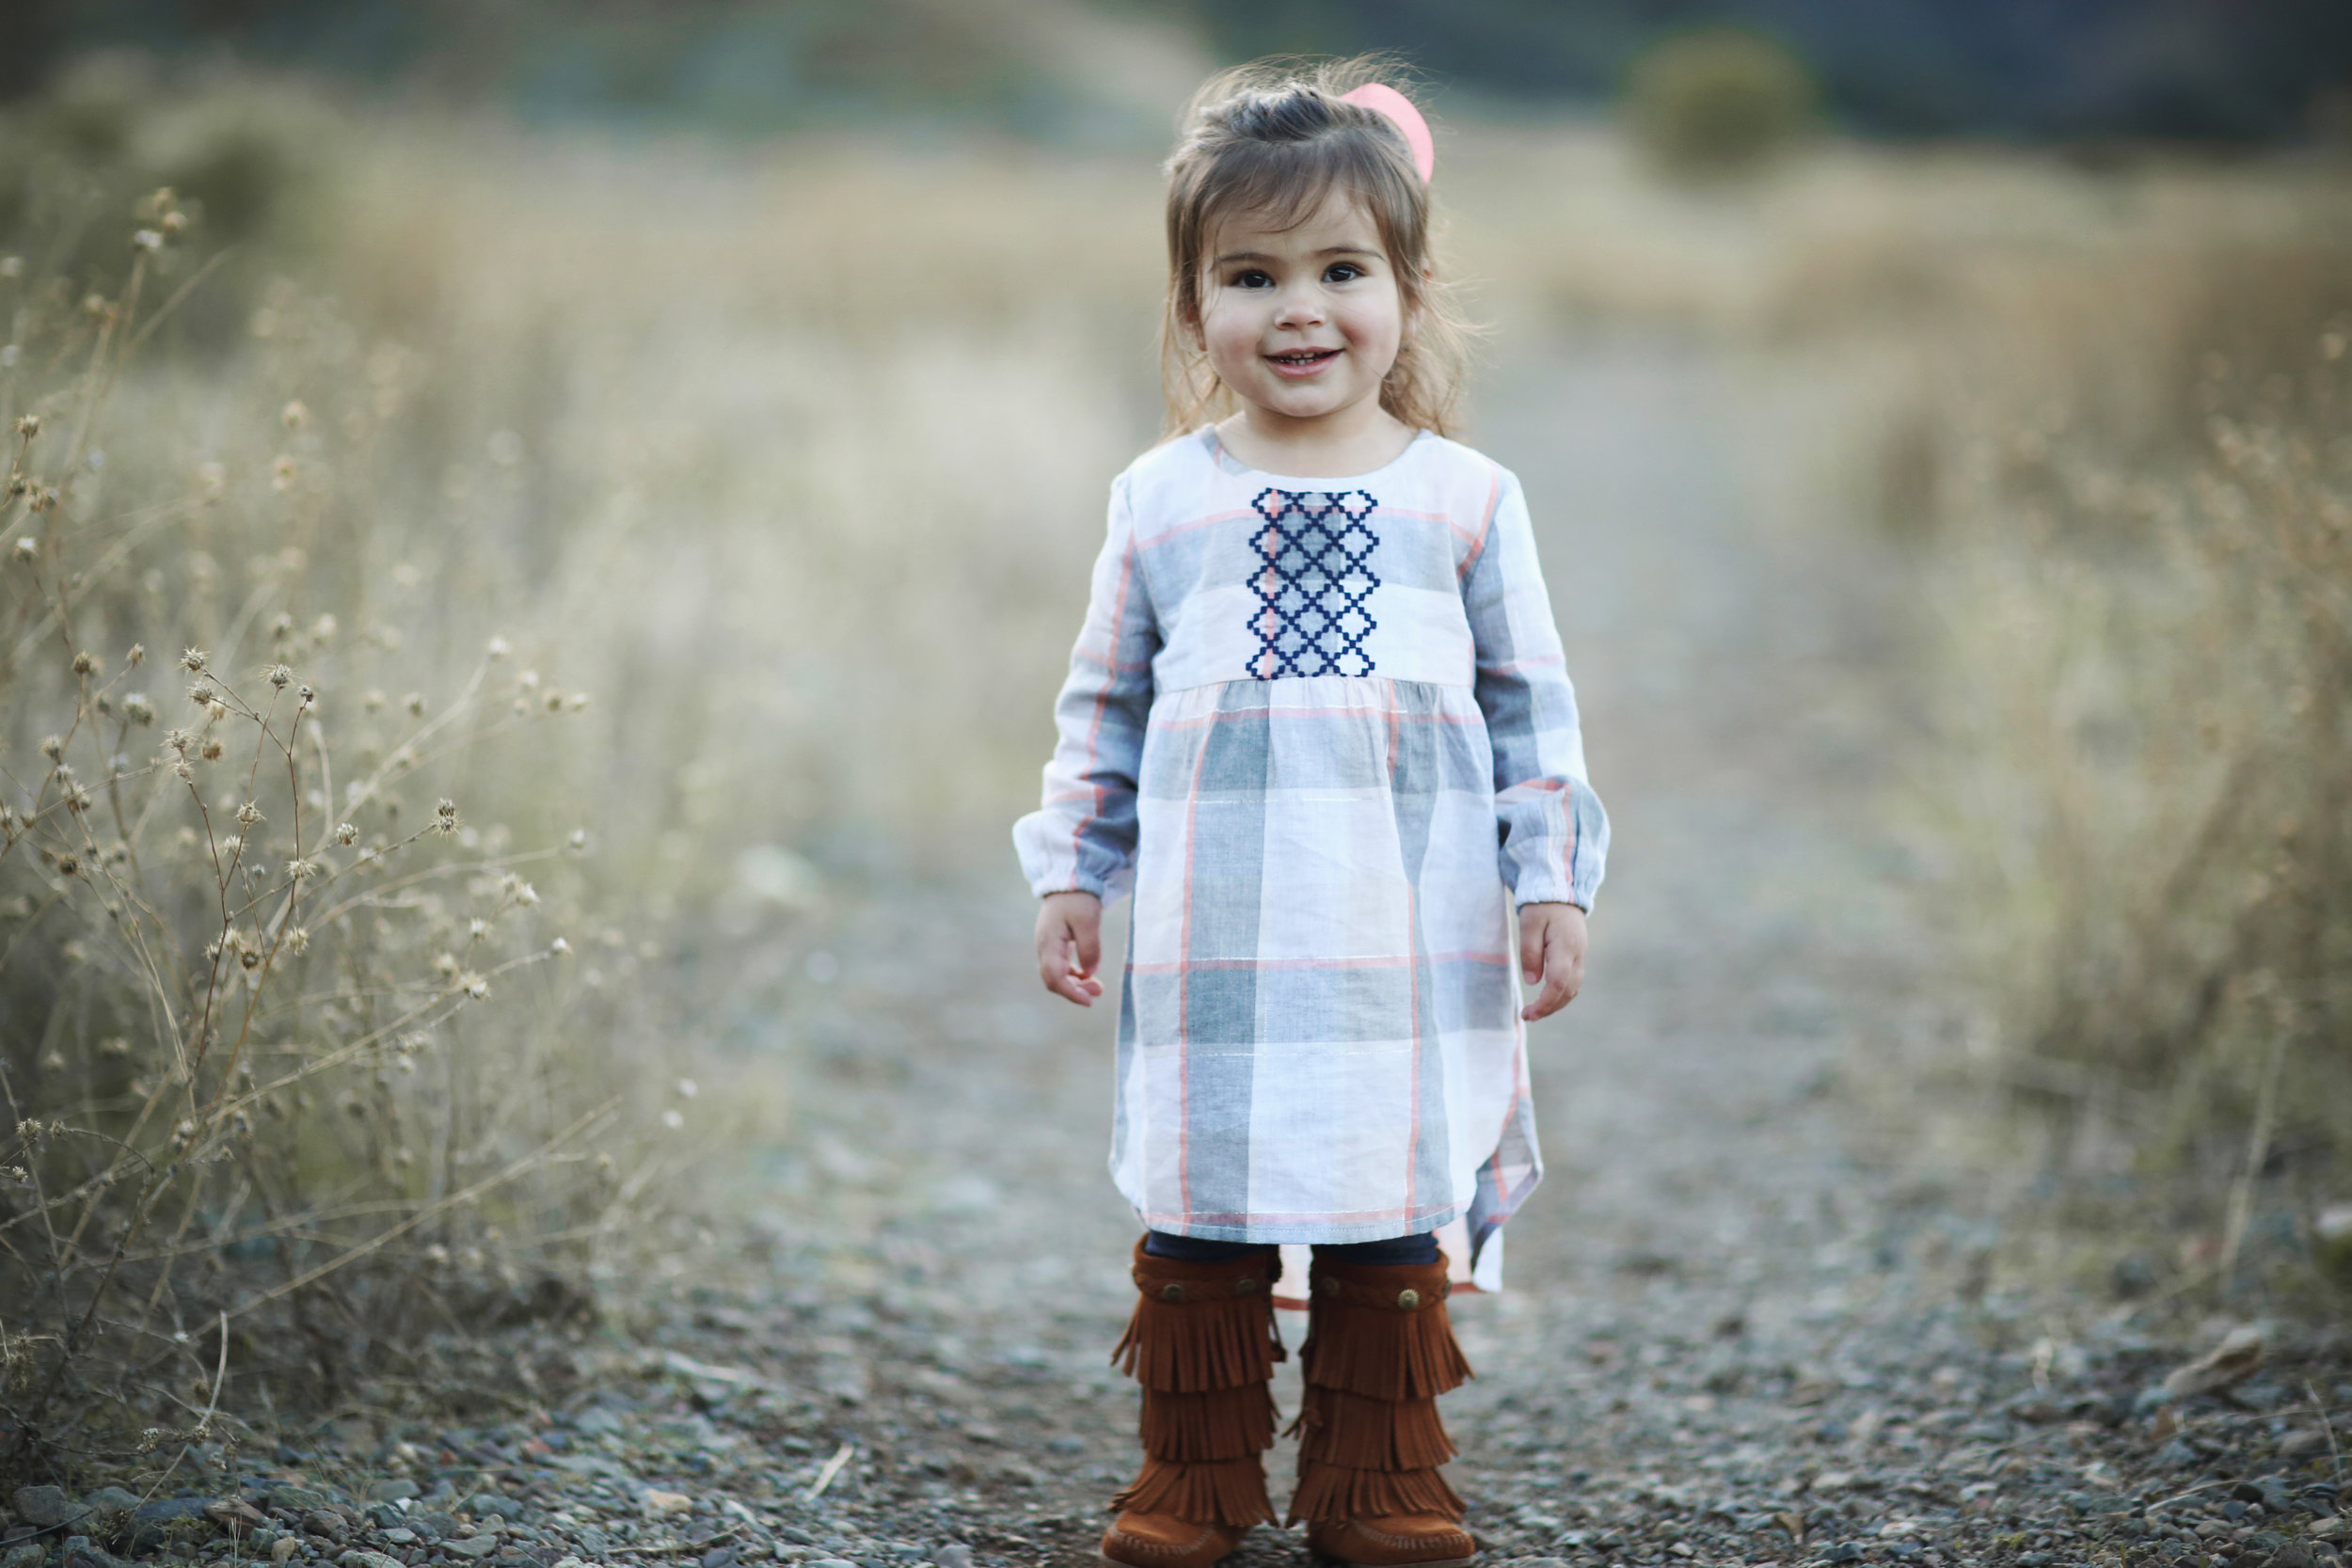 Toddler portrait in fringe moccasin boots standing in a field in Orange County.